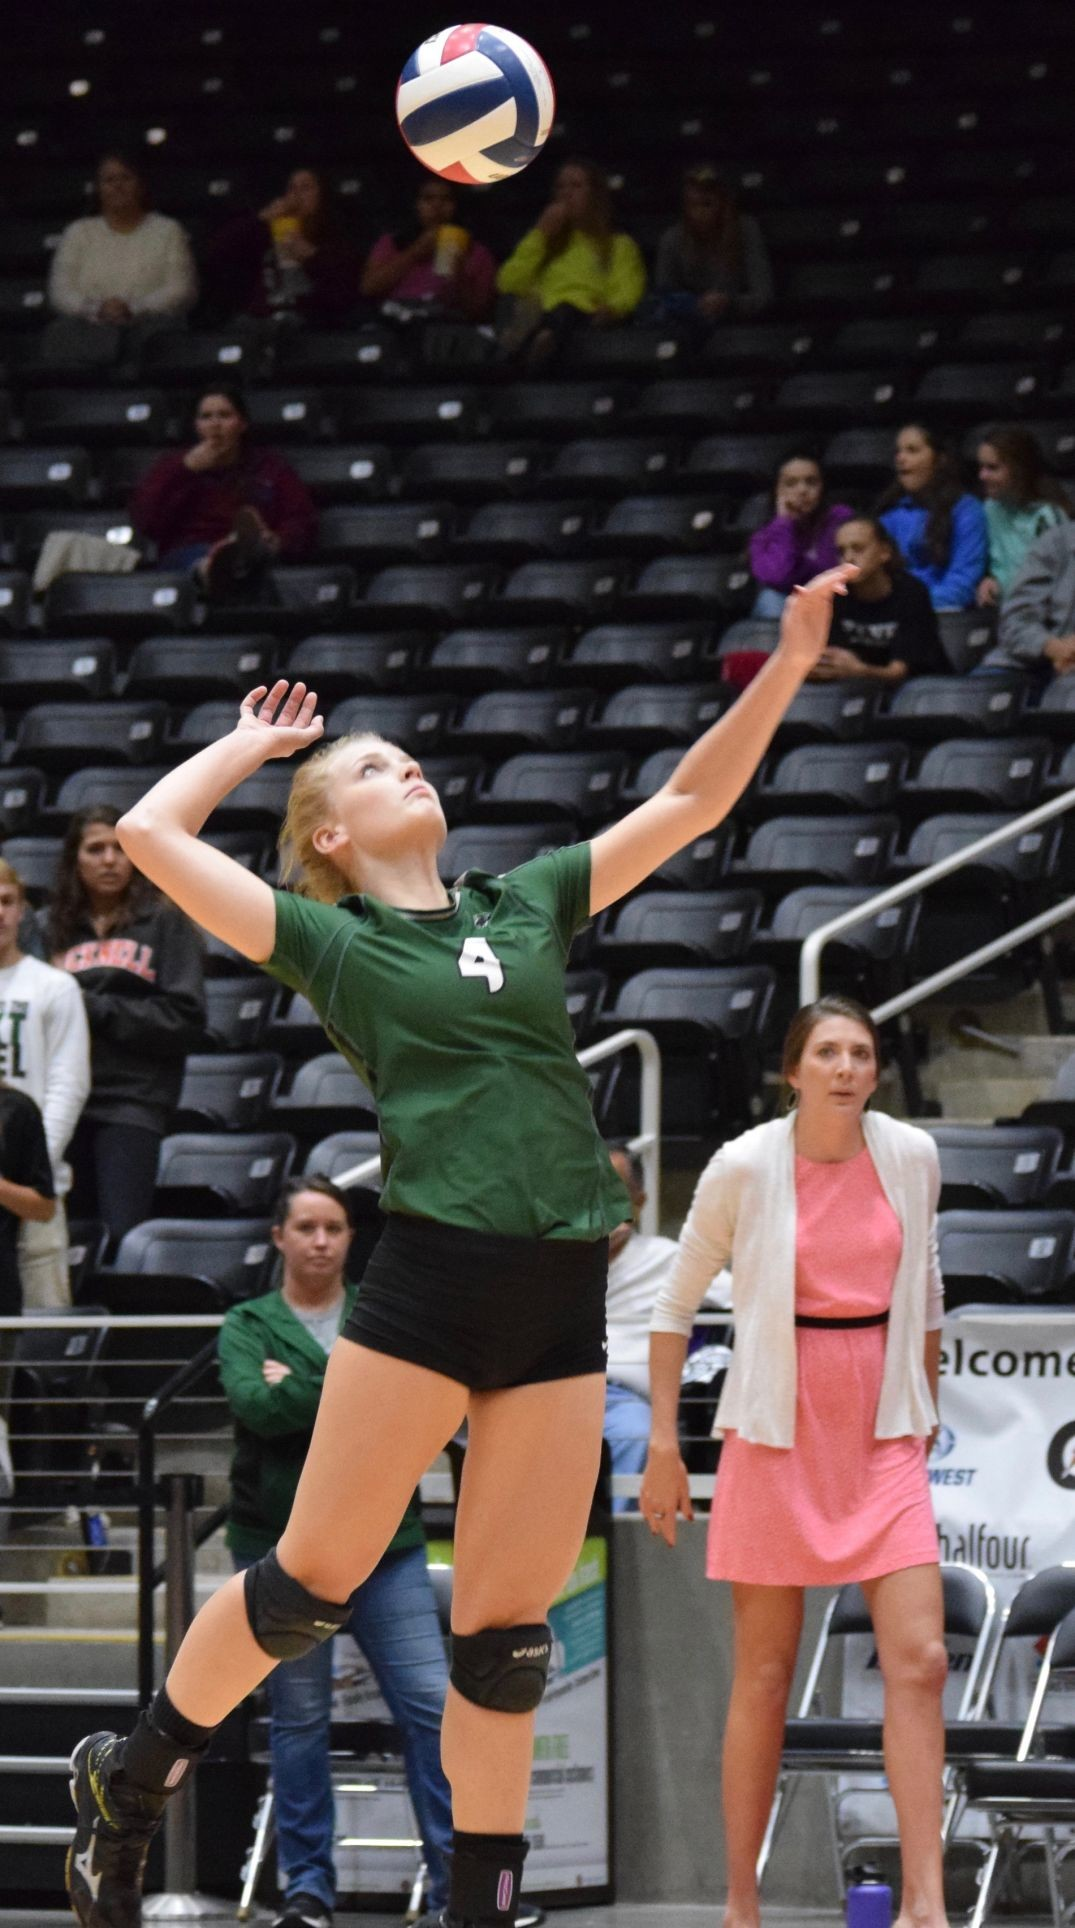 Vanessa Vozza had nine kills and 10 digs and Cedar Park fell to Amarillo 3-1 (13-25, 19-25, 25-14, 25-18) Saturday afternoon in the state finals at the Curtis Culwell Center in Garland.